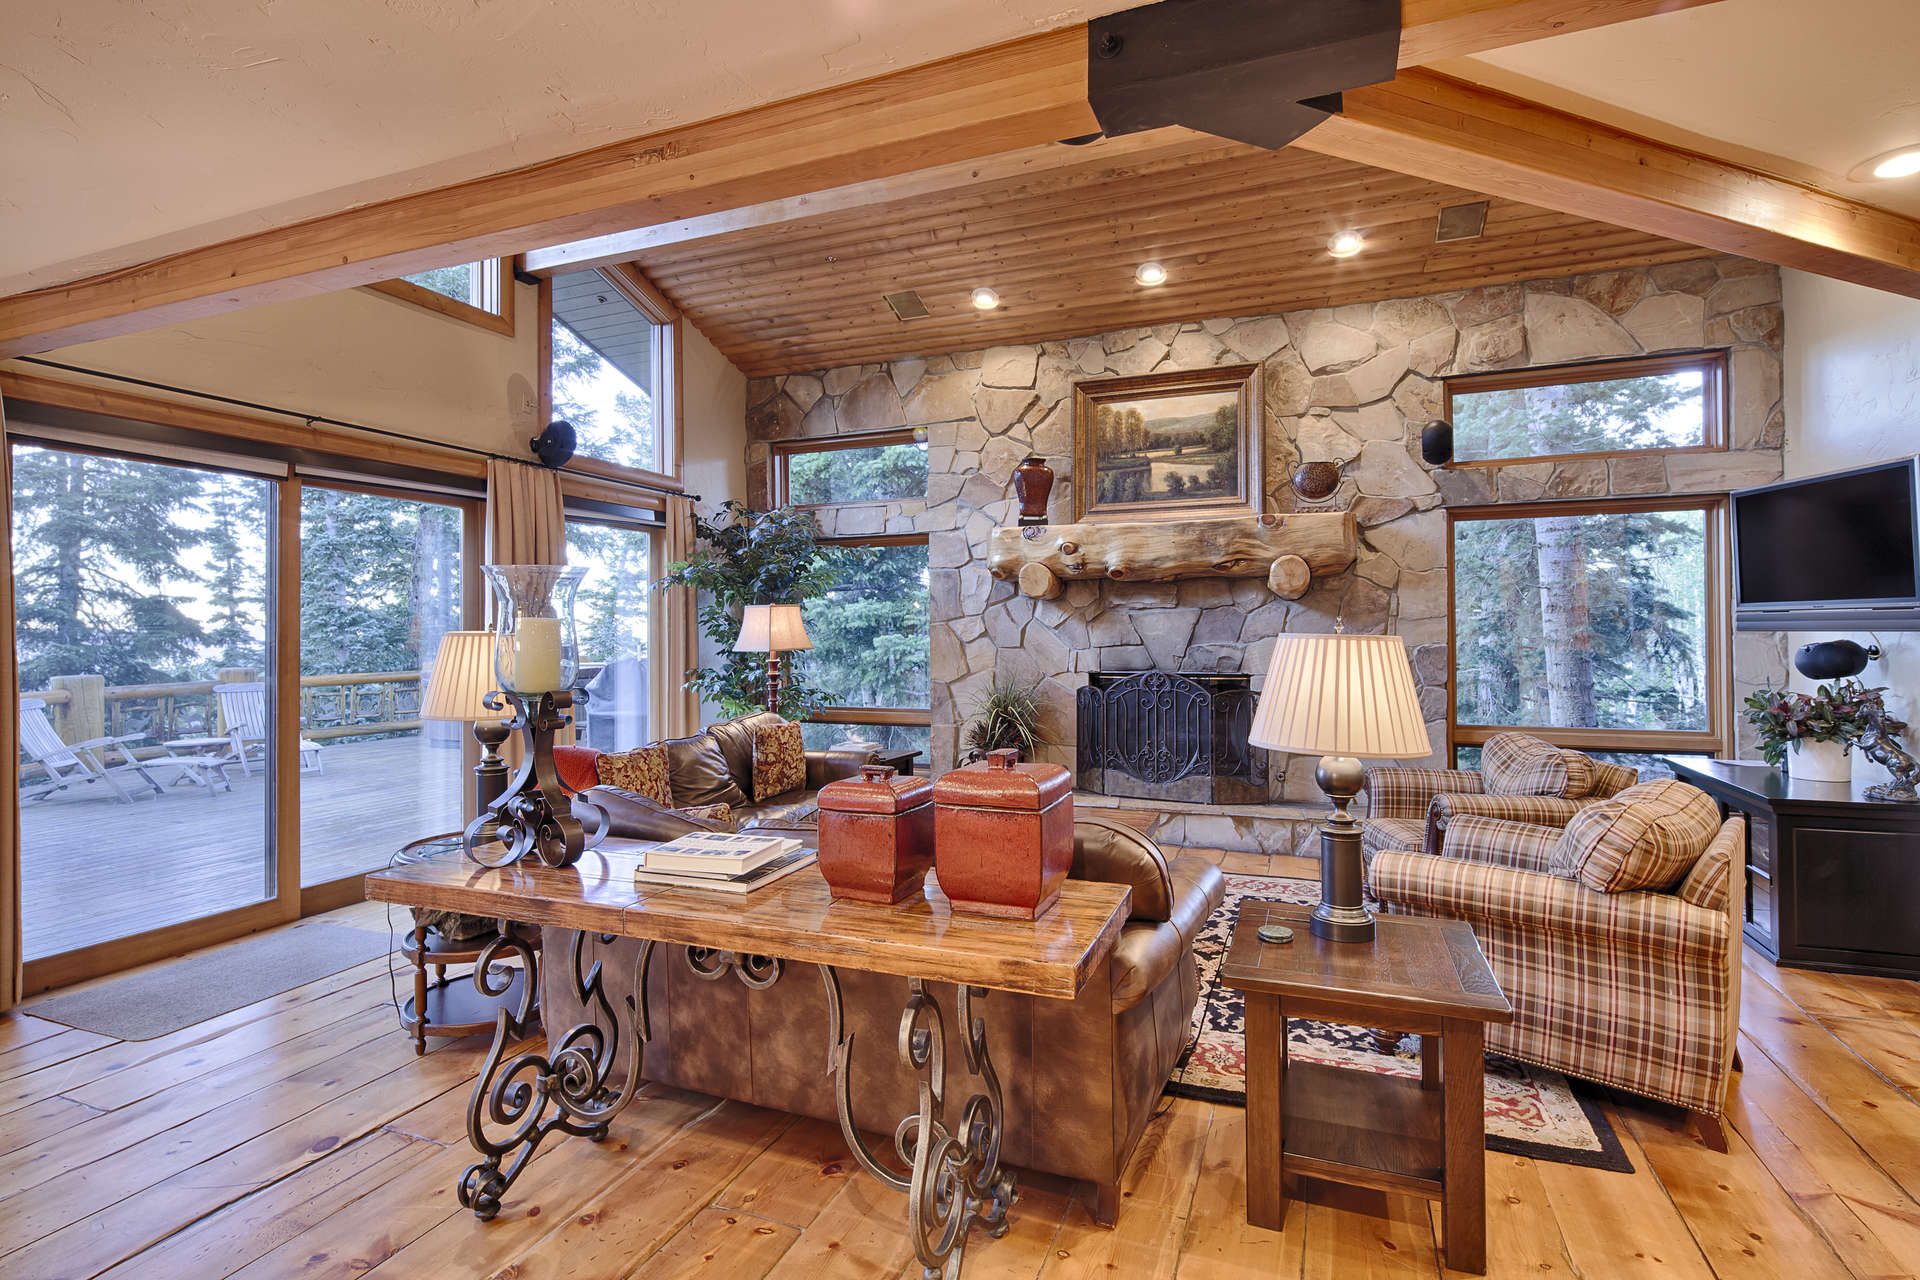 Luxury vacation rentals usa - Utah - Deer valley silver lake - The Laughing Ranch - Image 1/12